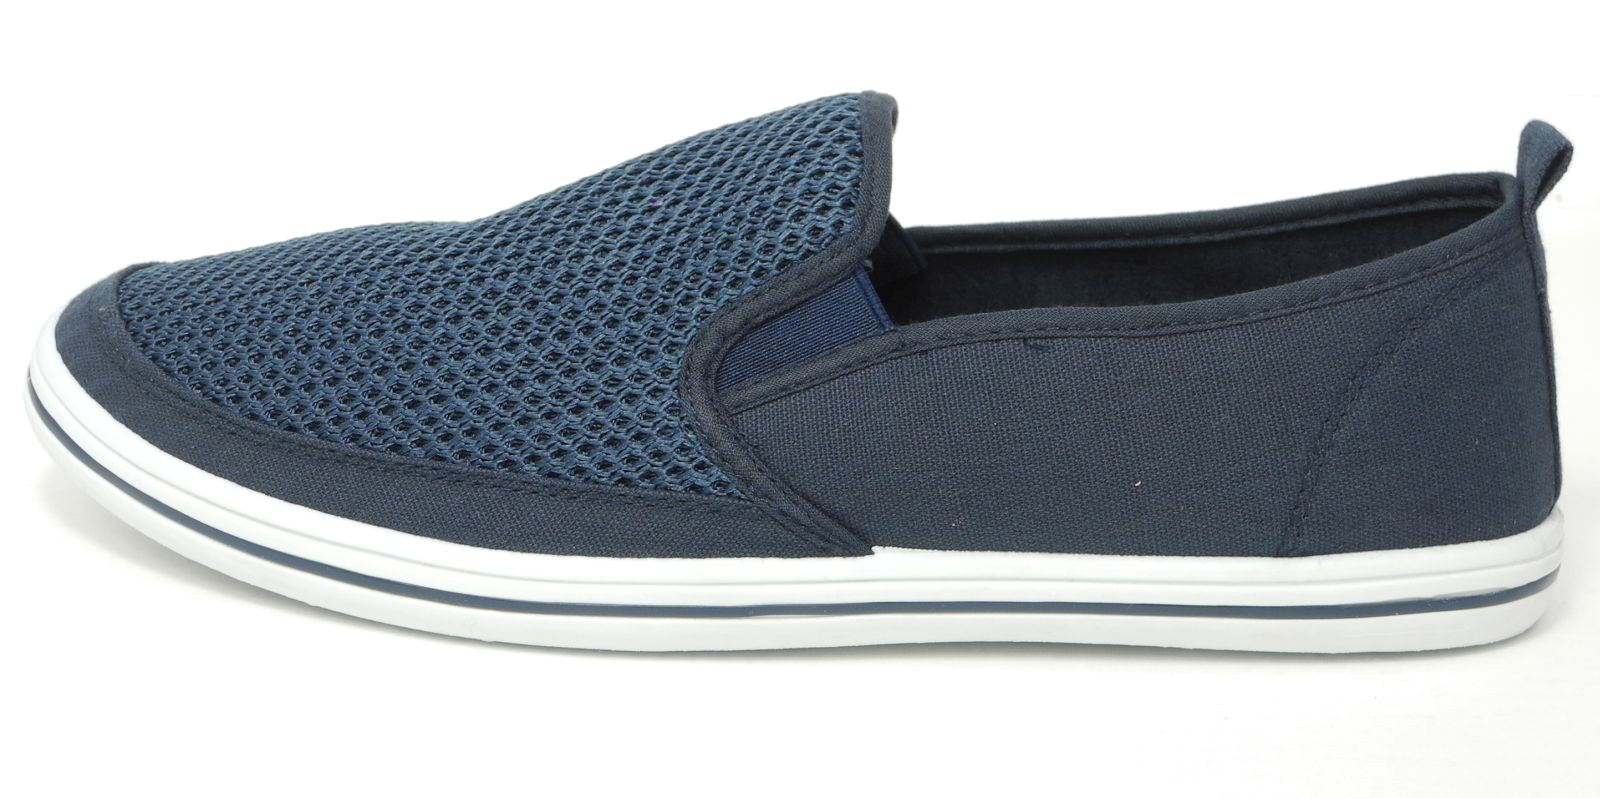 Mens-Mesh-Canvas-Yachting-Deck-Shoes-Slip-On-